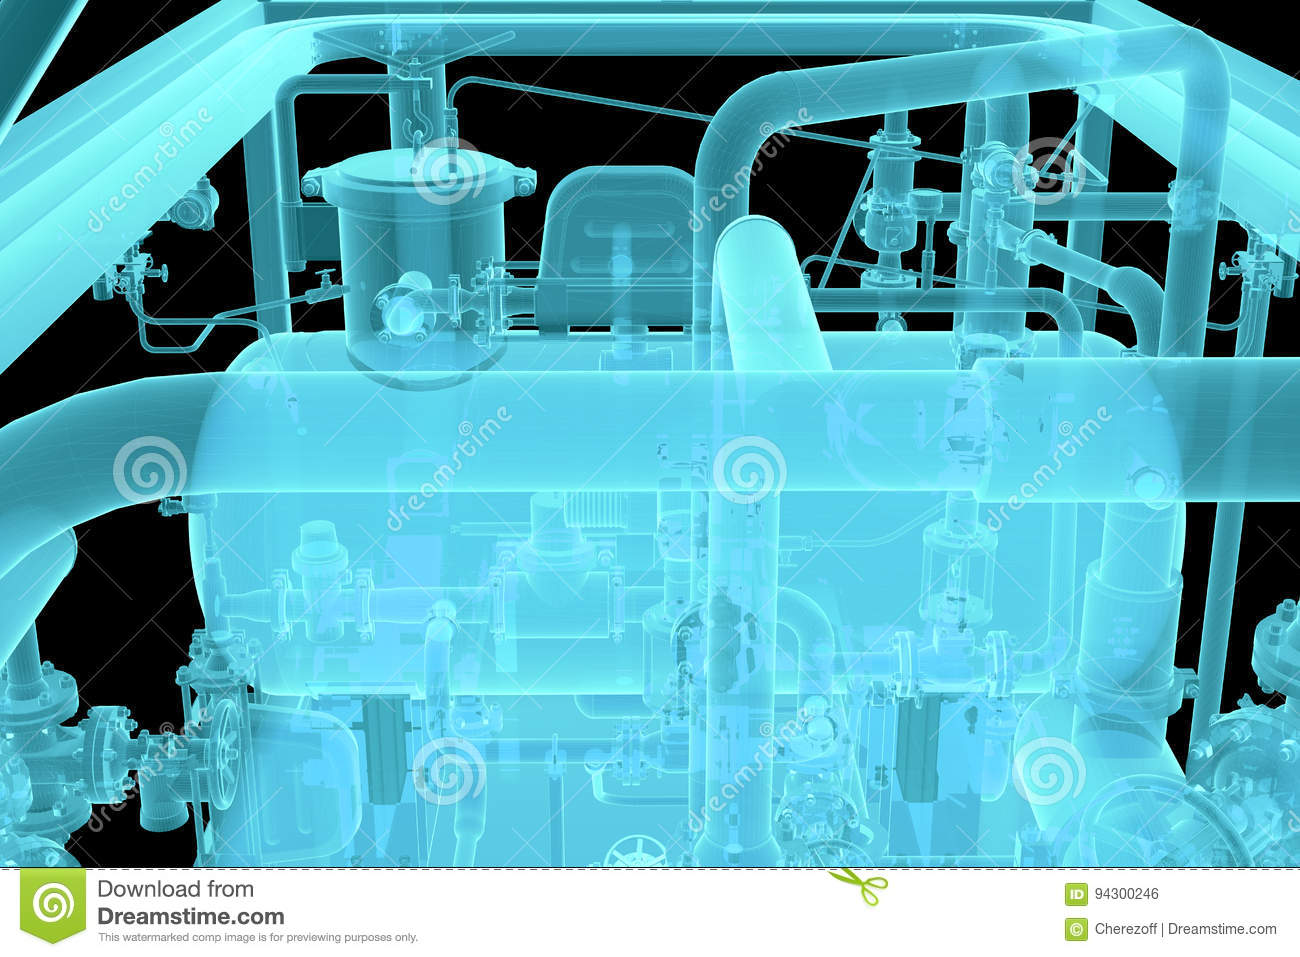 X-Ray Image of Industrial equipment